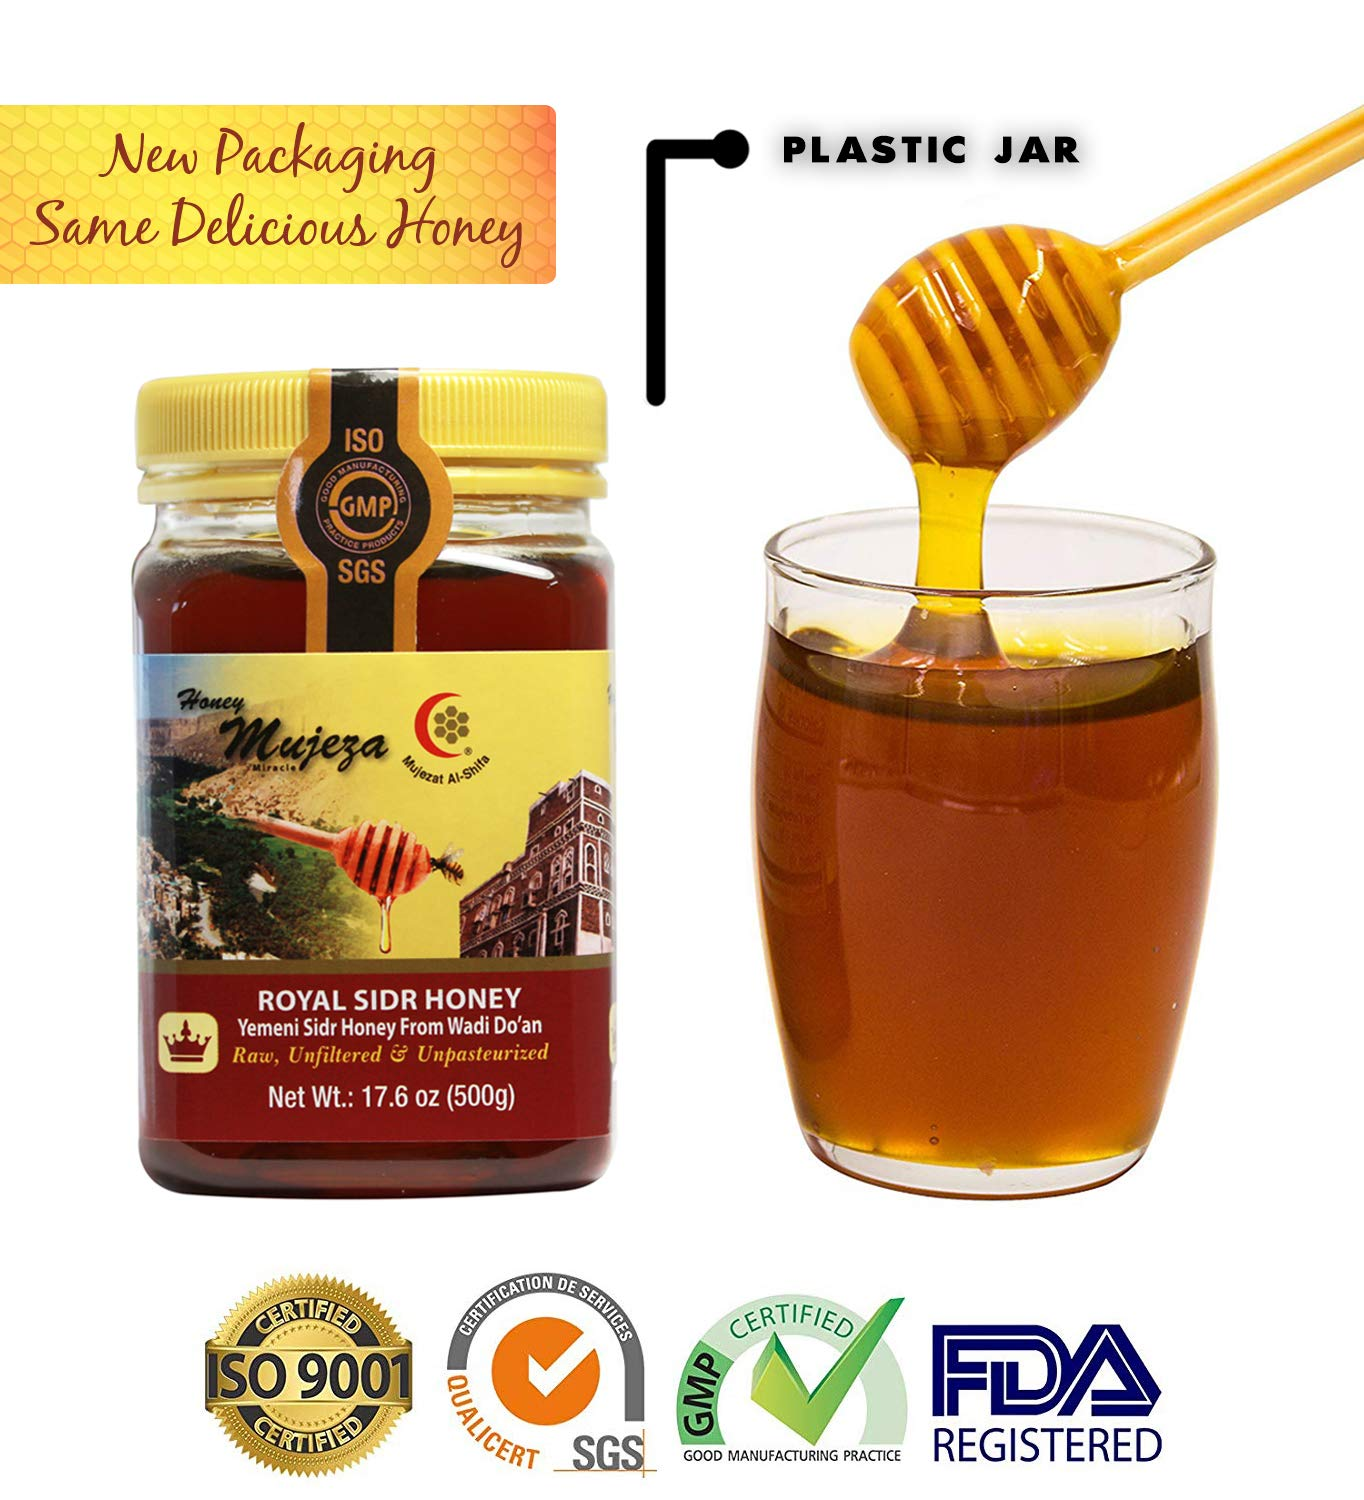 Royal Honey (Authentic Yemen Sidr Honey) Wadi Dou'an, Unheated Unfiltered Unprocessed 100% Natural Raw Honey Plastic jar (Different Sizes Available) (500g / 17.6 oz)